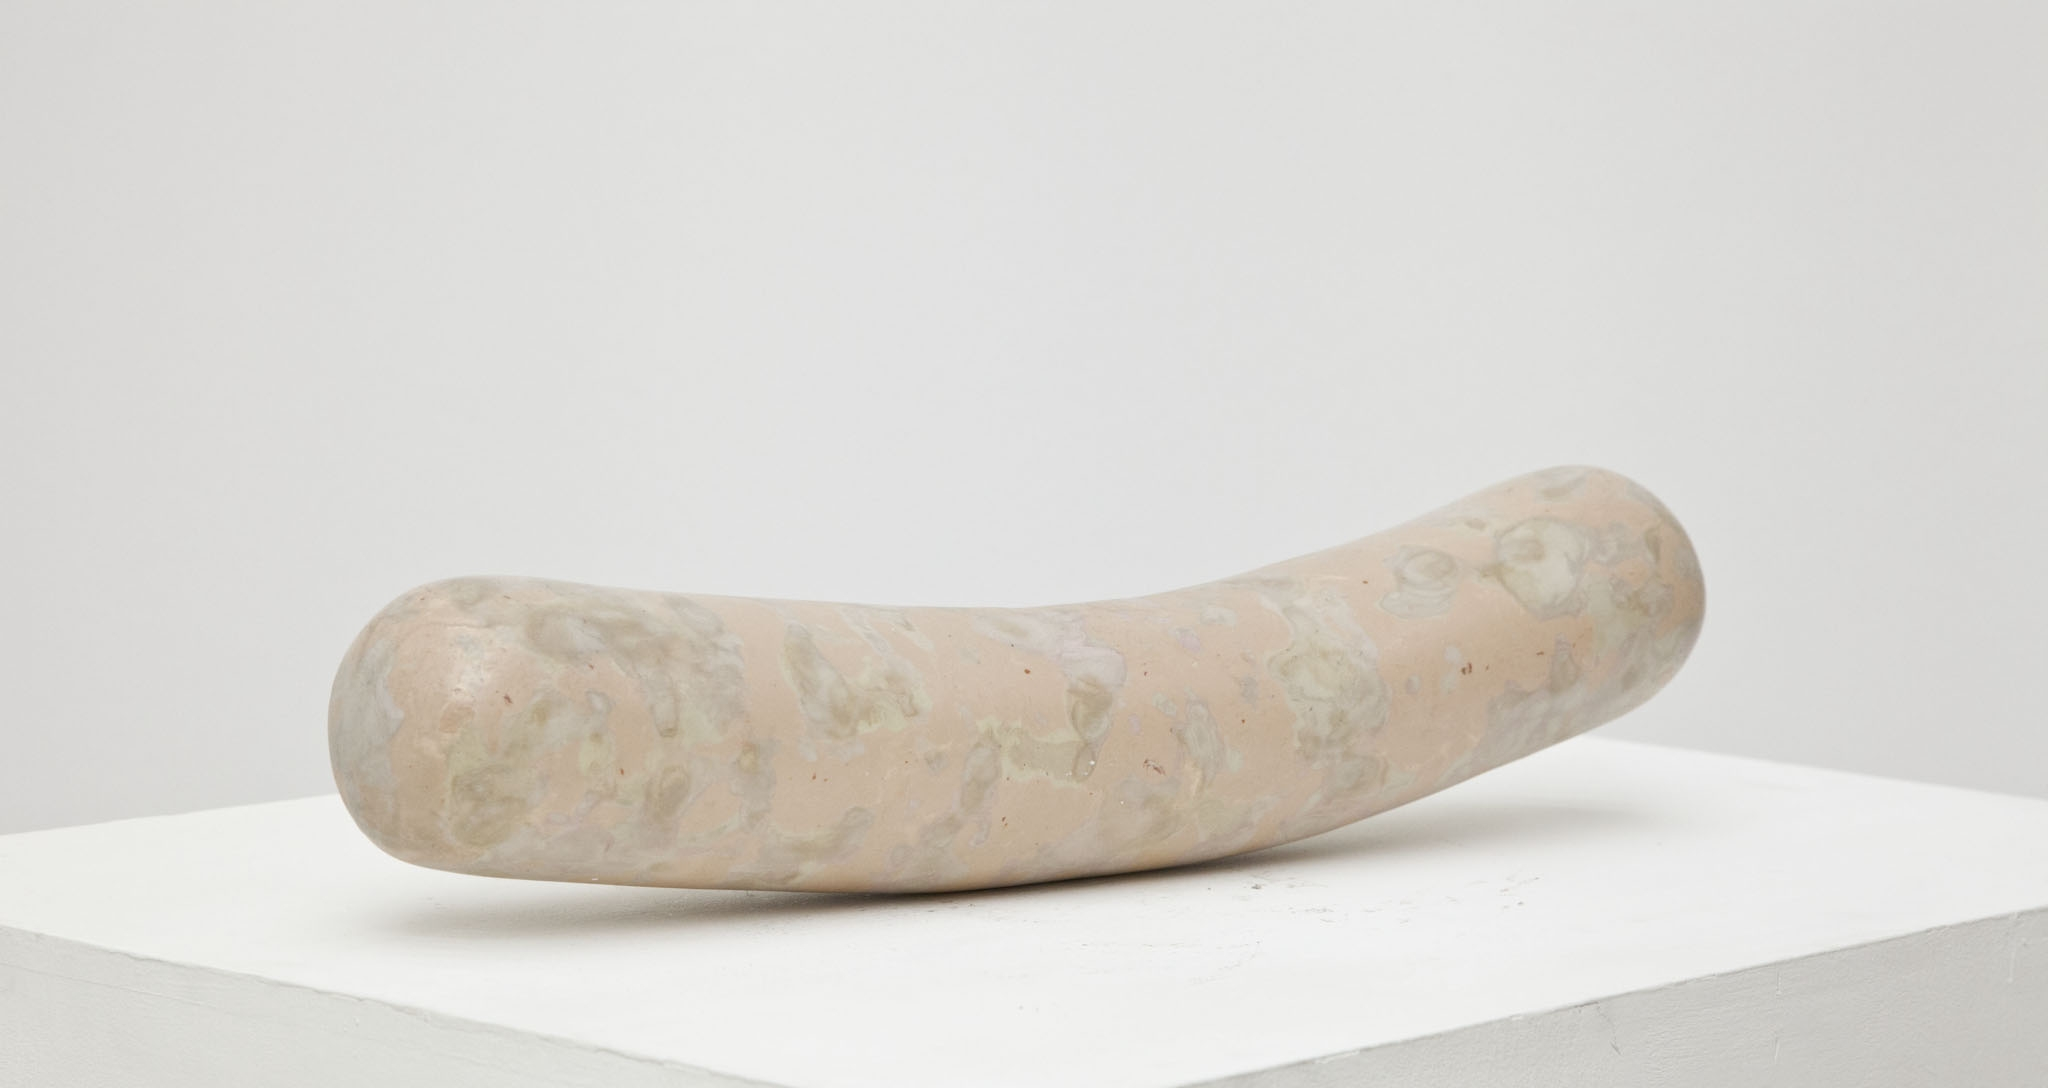 Salchicha (sausage) , epoxy putty, 5 x 18 x 5 in, 2012.